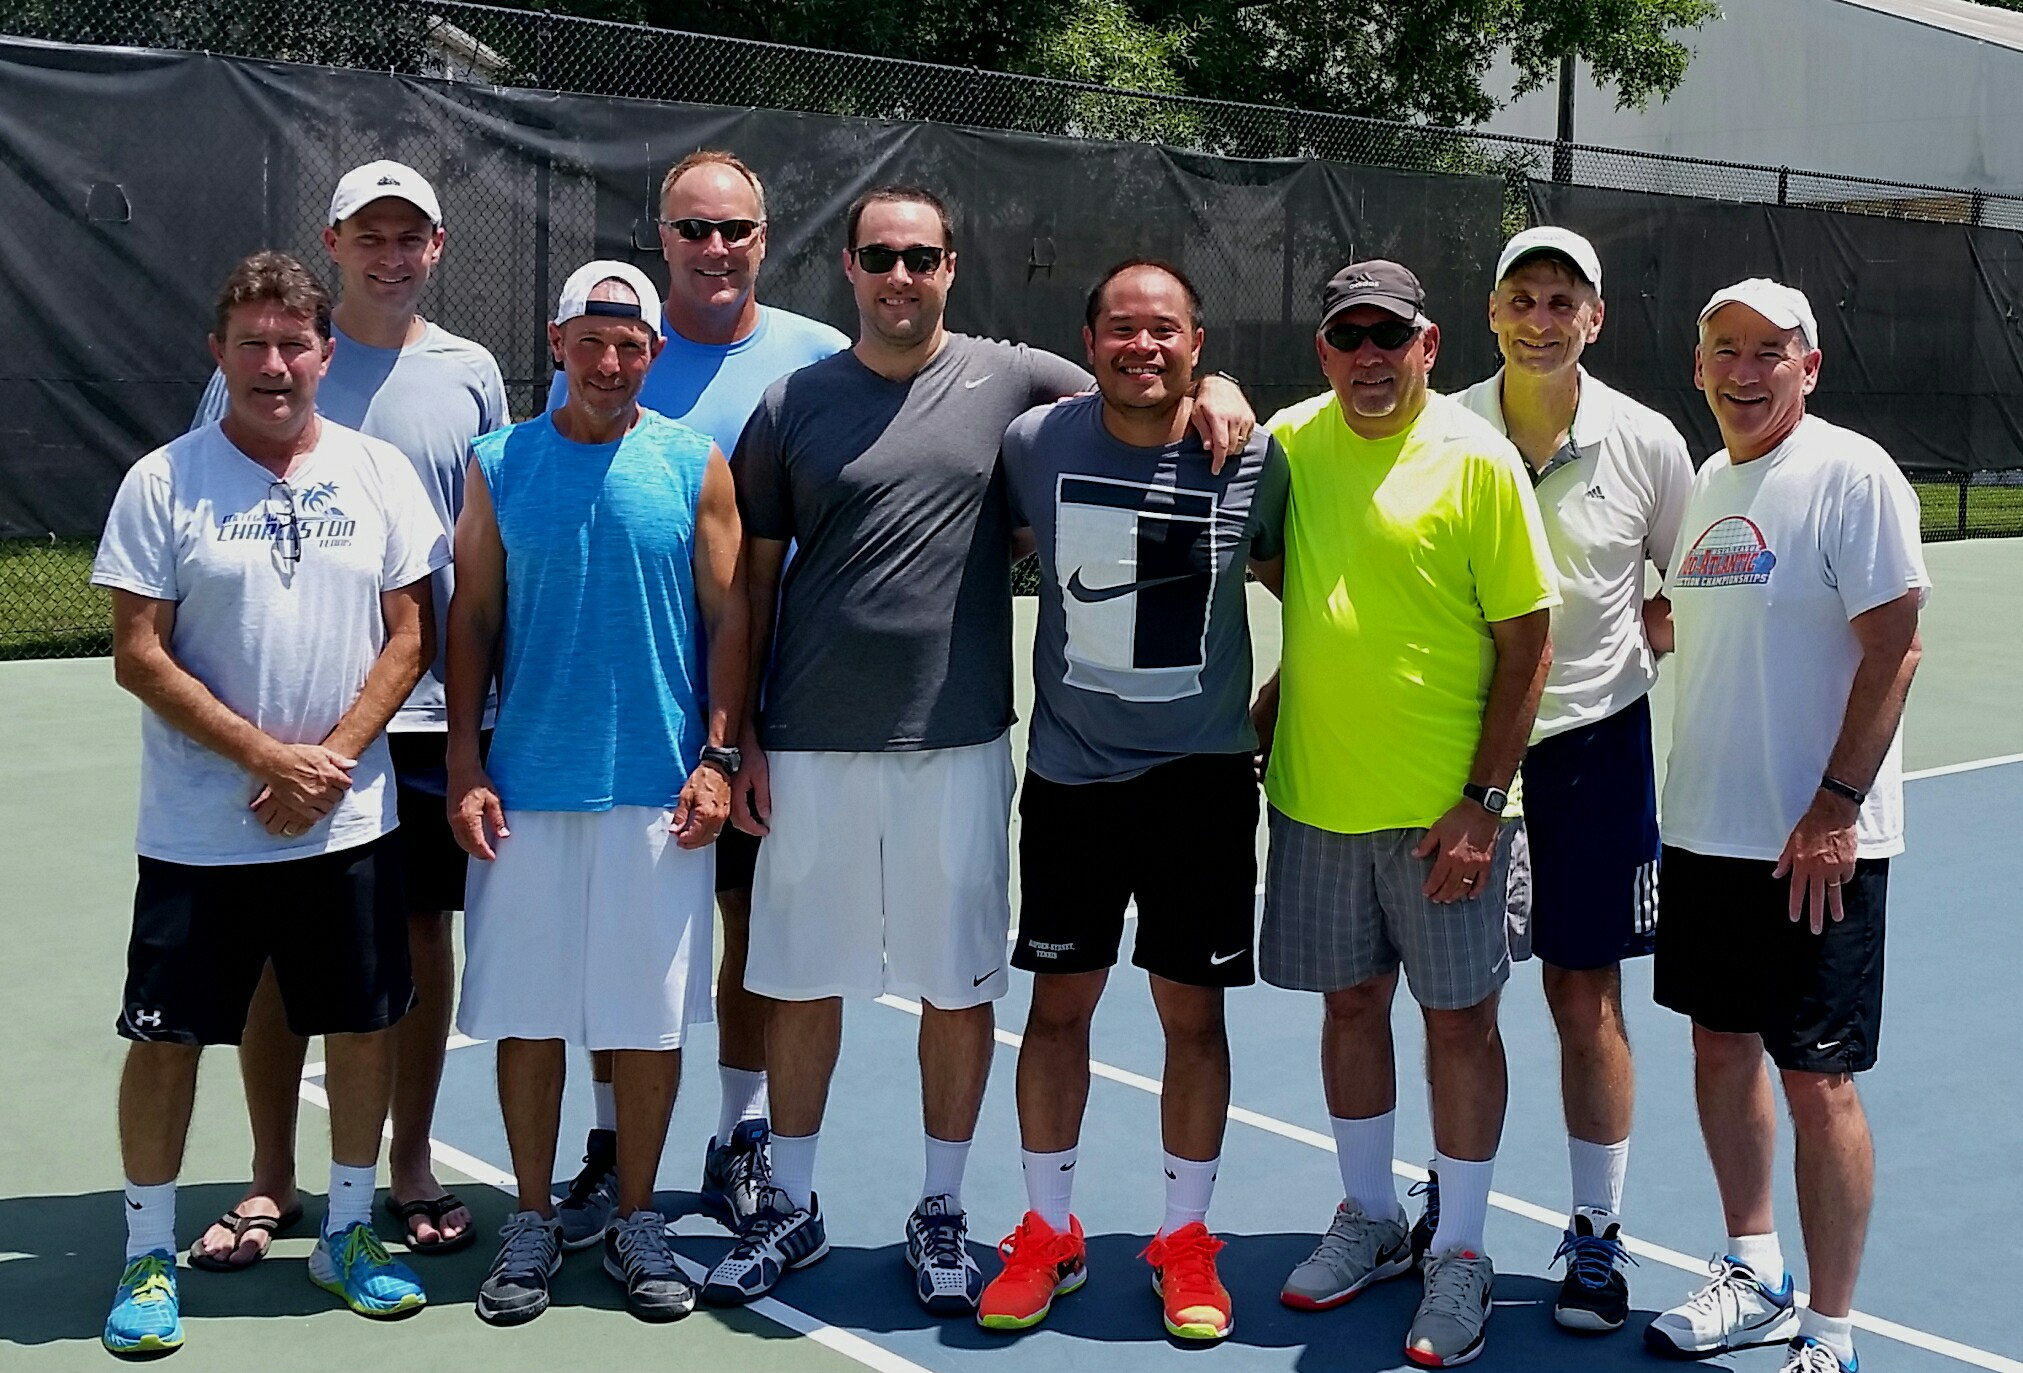 "Congratulations to the 2017 Richmond Racquet League Champions - Team Raintree Gold: Eddie Parker, Bartlo Oosthuizen, Brian Fleishman, Rev. David Dwight, Matt Berens, Ralph Agpaoa, Joe Sarver, Jim Stiff, ad Hank Wood. ""This is a solid team of players and even better men."" Way to represent Raintree gentlemen."